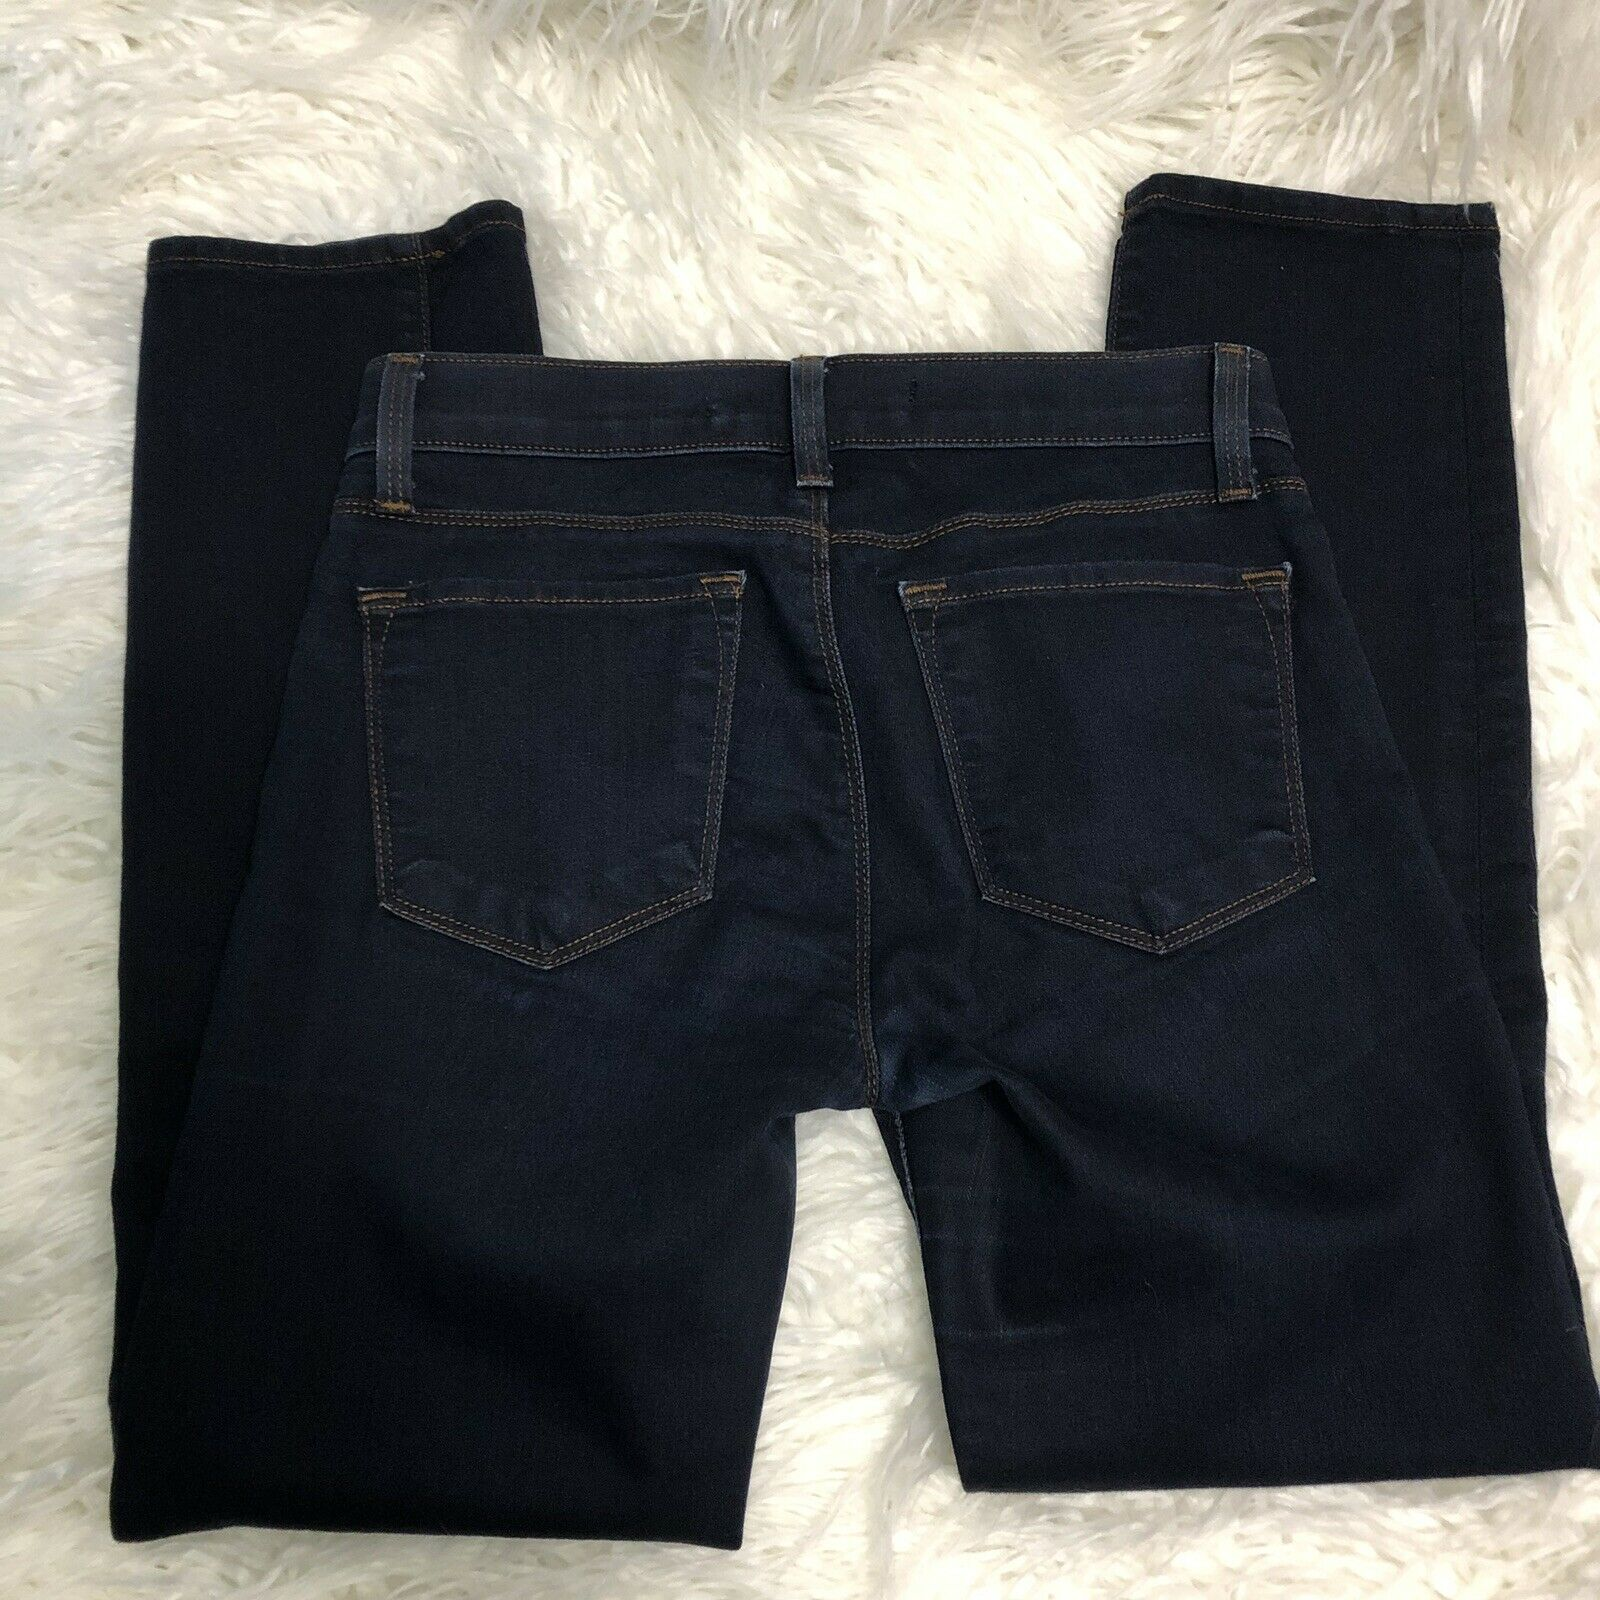 J Brand Jeans 811 Mid Rise Skinny Women's Size 24 Ink